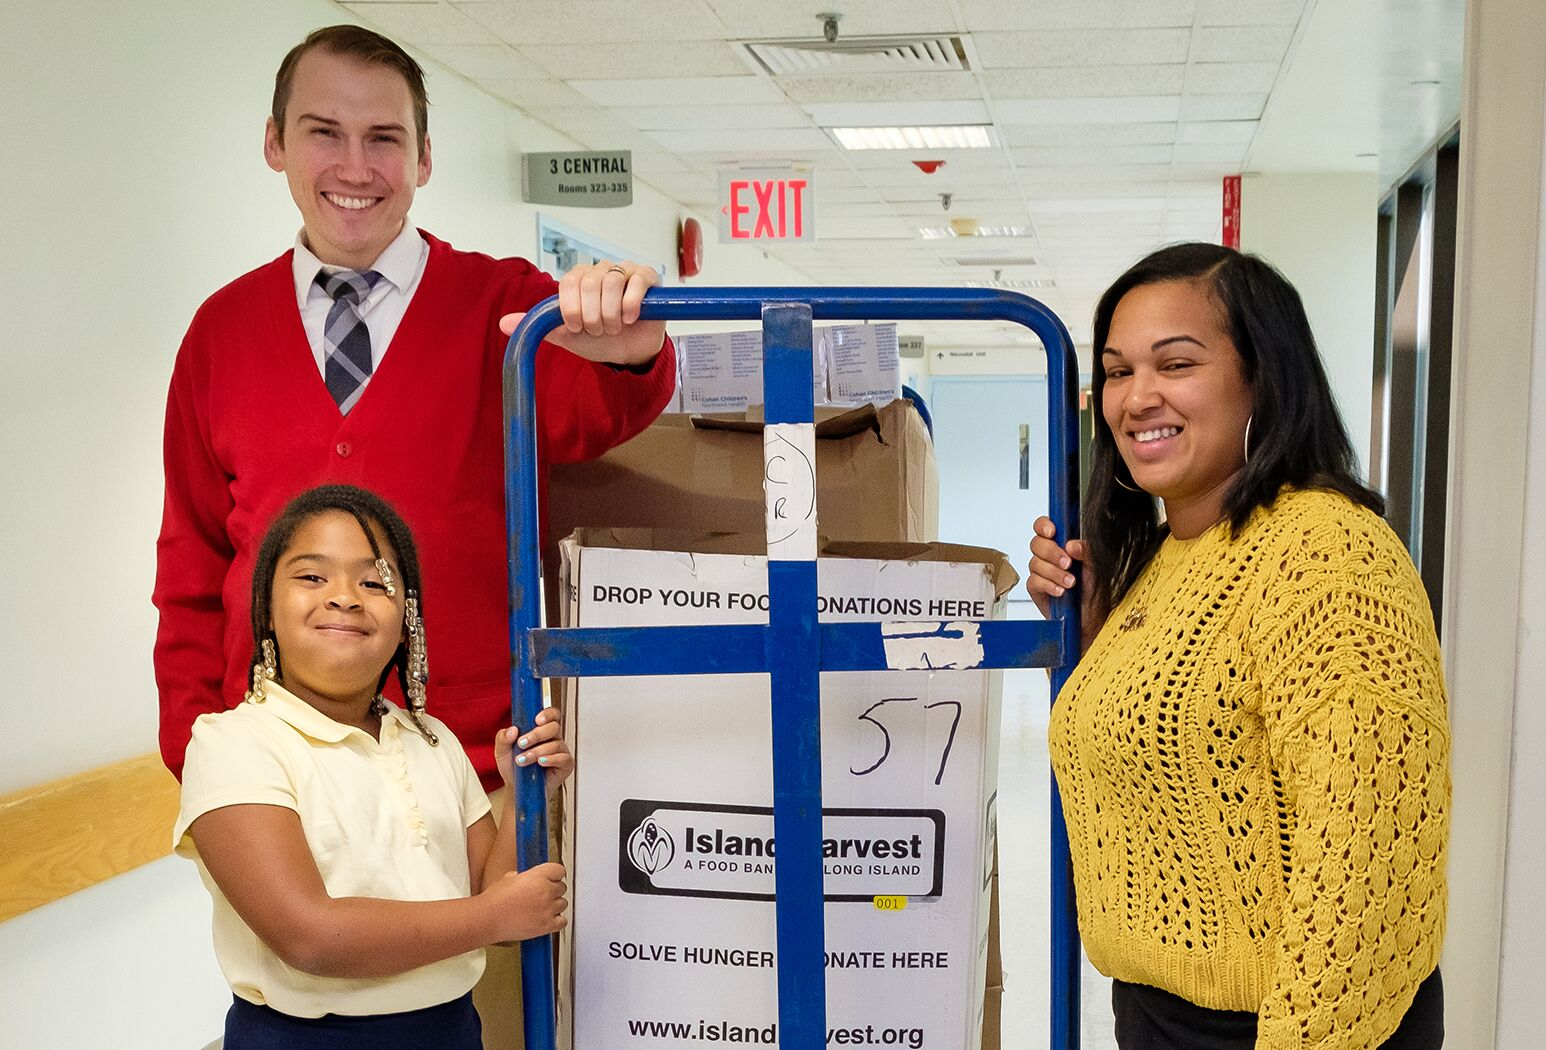 From left: Mr. Rogers look alike Chris Kind helps 2nd grade student Tianna Huggins and her mother Nistachia Belle, of Roosevelt, LI, load some of the food collected for Island Harvest into a waiting truck.